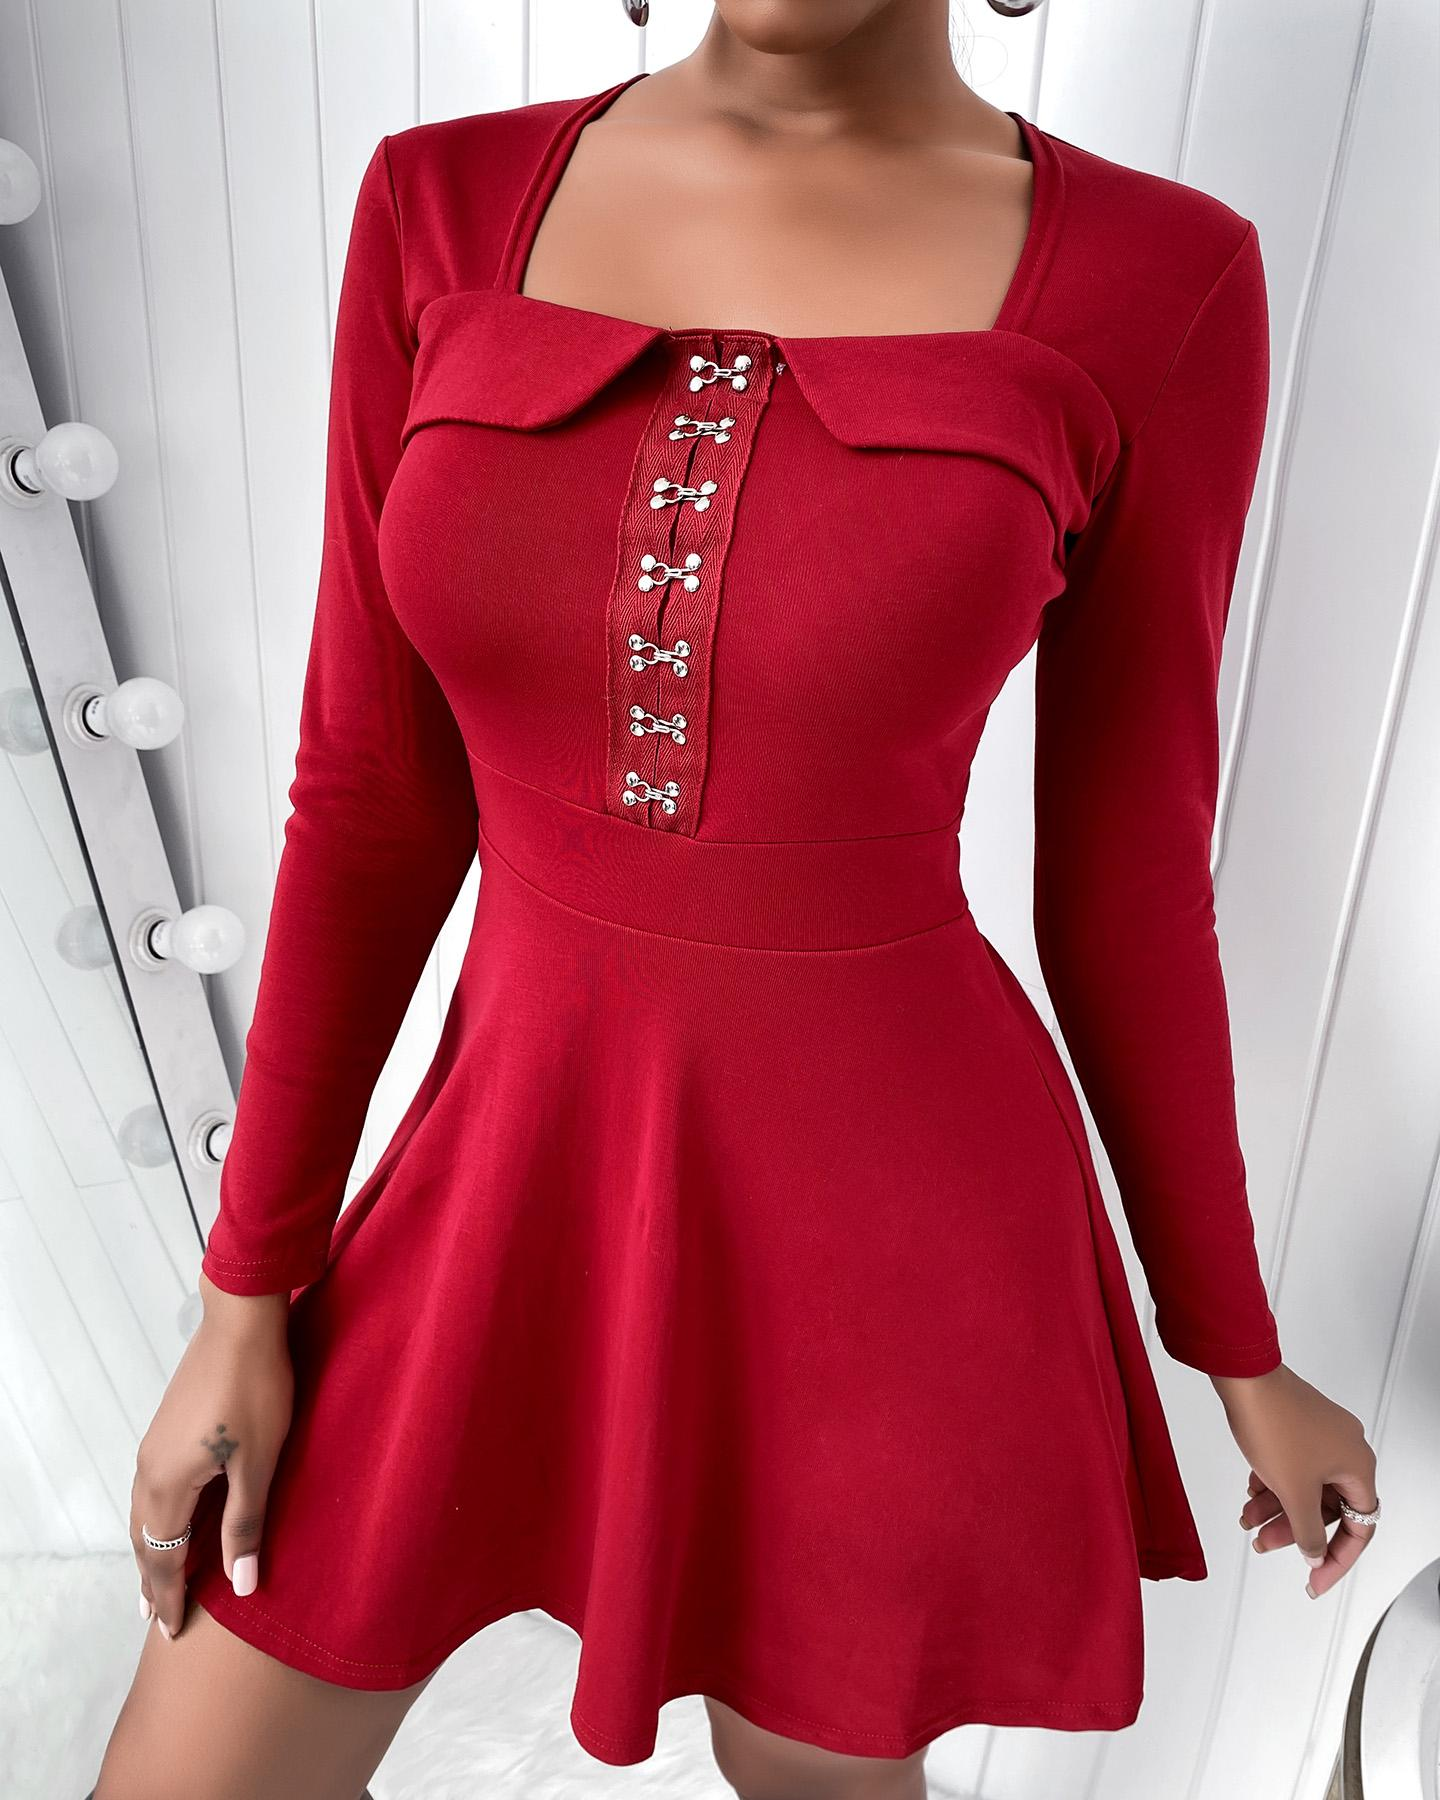 ivrose / Buckled Long Sleeve Casual Dress